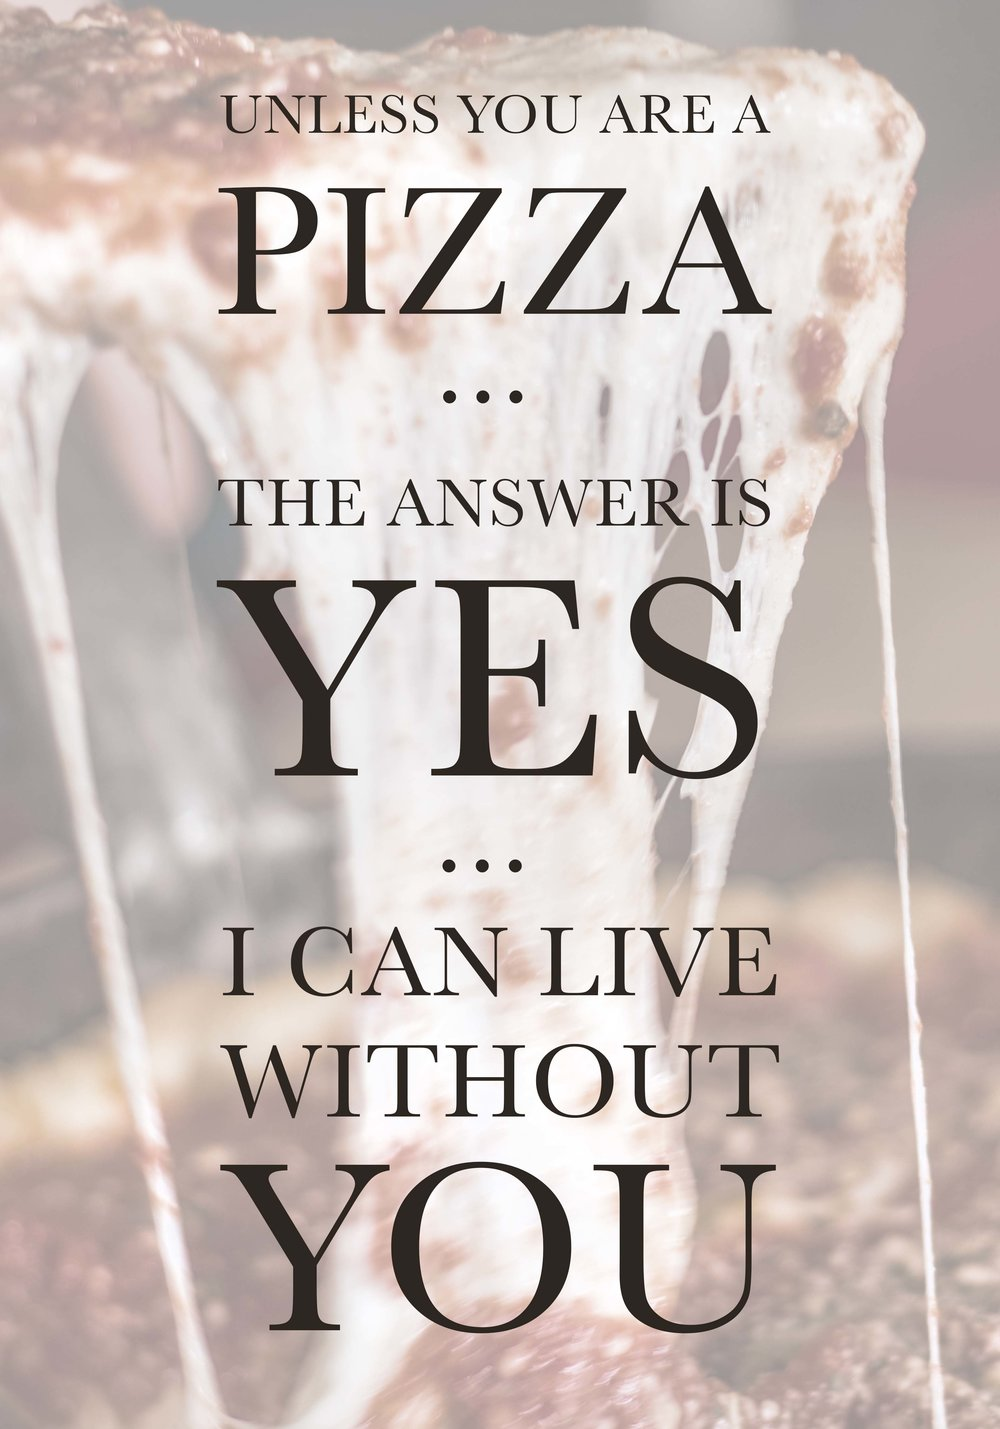 Unless you are a pizza print ready.jpg